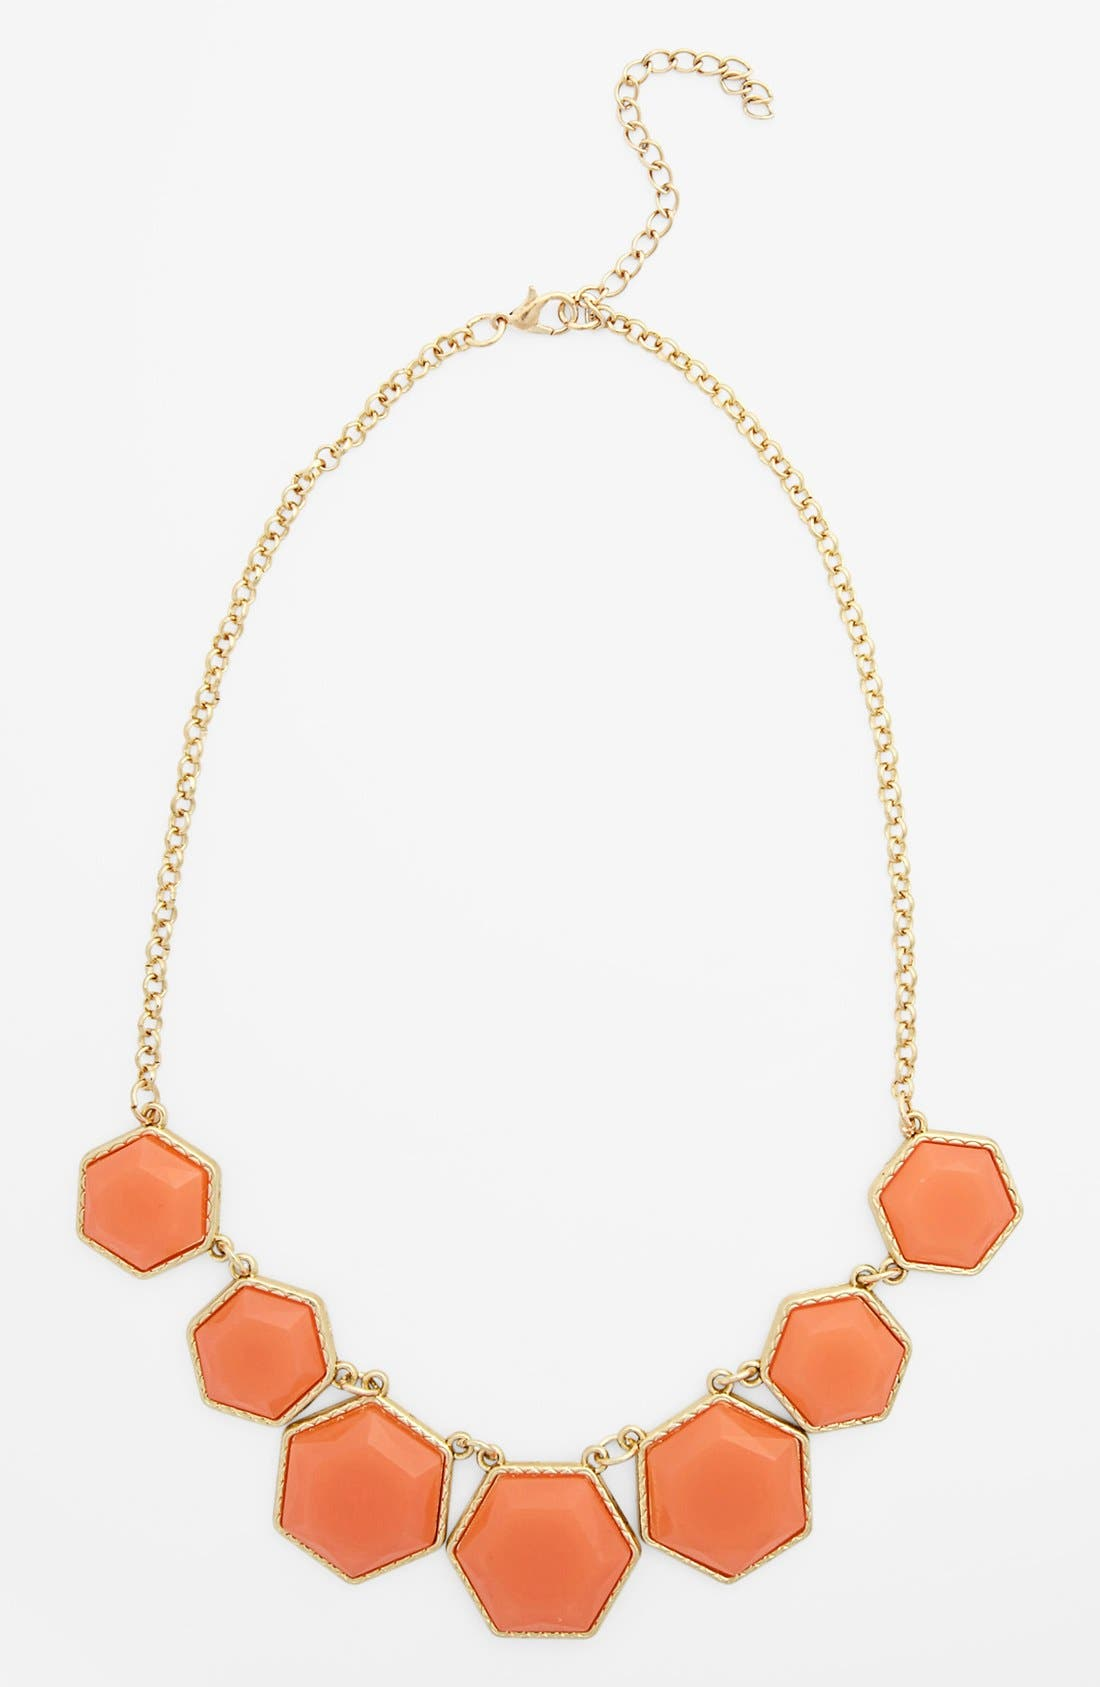 Main Image - Stephan & Co. Geometric Statement Necklace